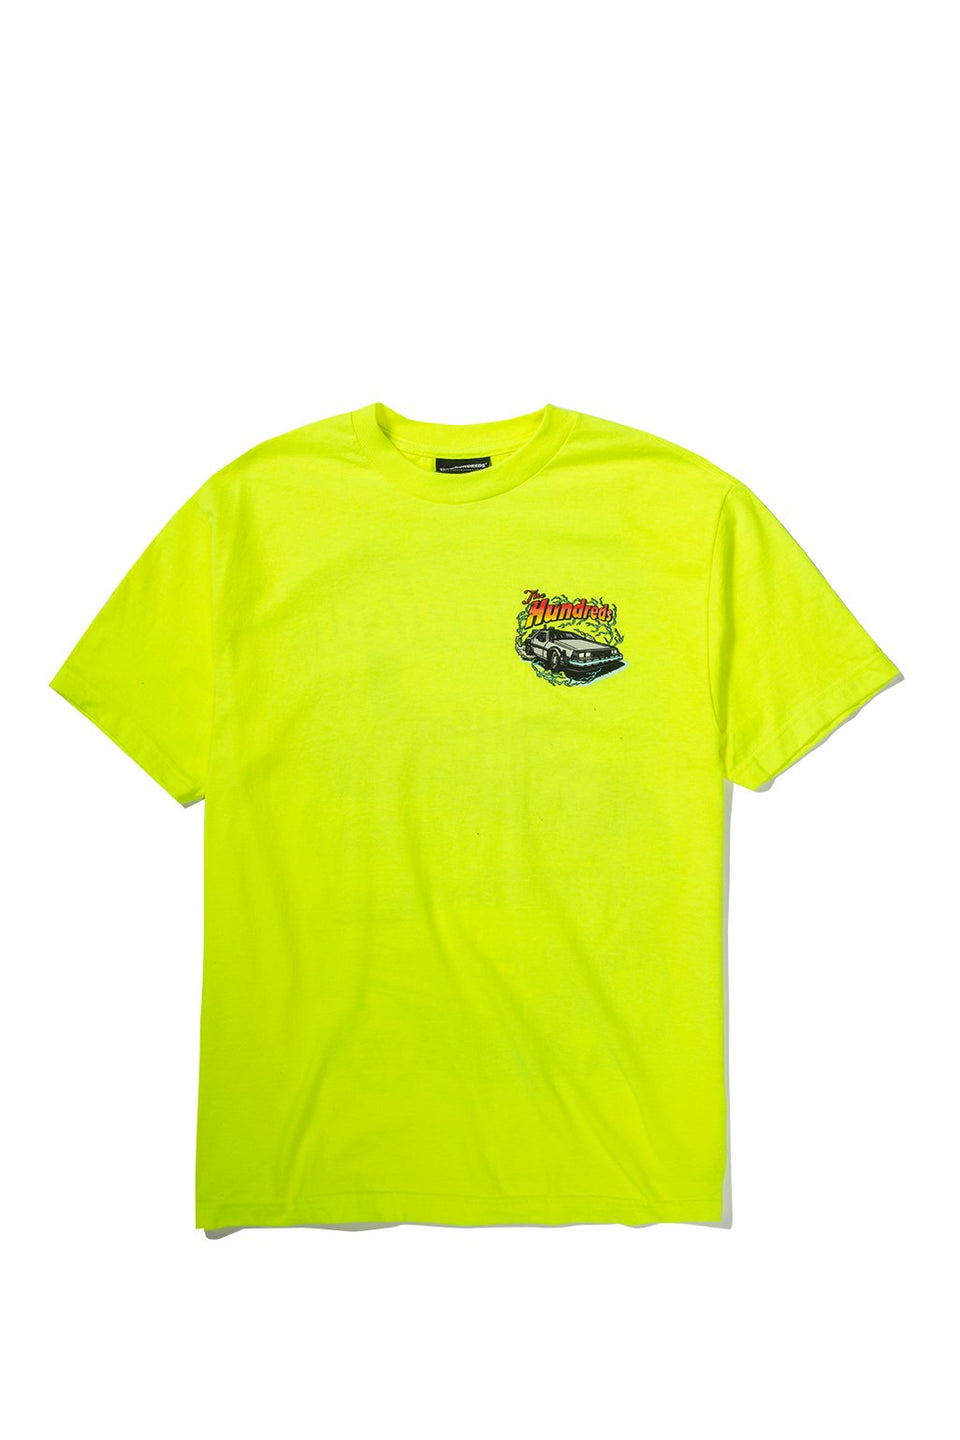 Car Show Off T-Shirt